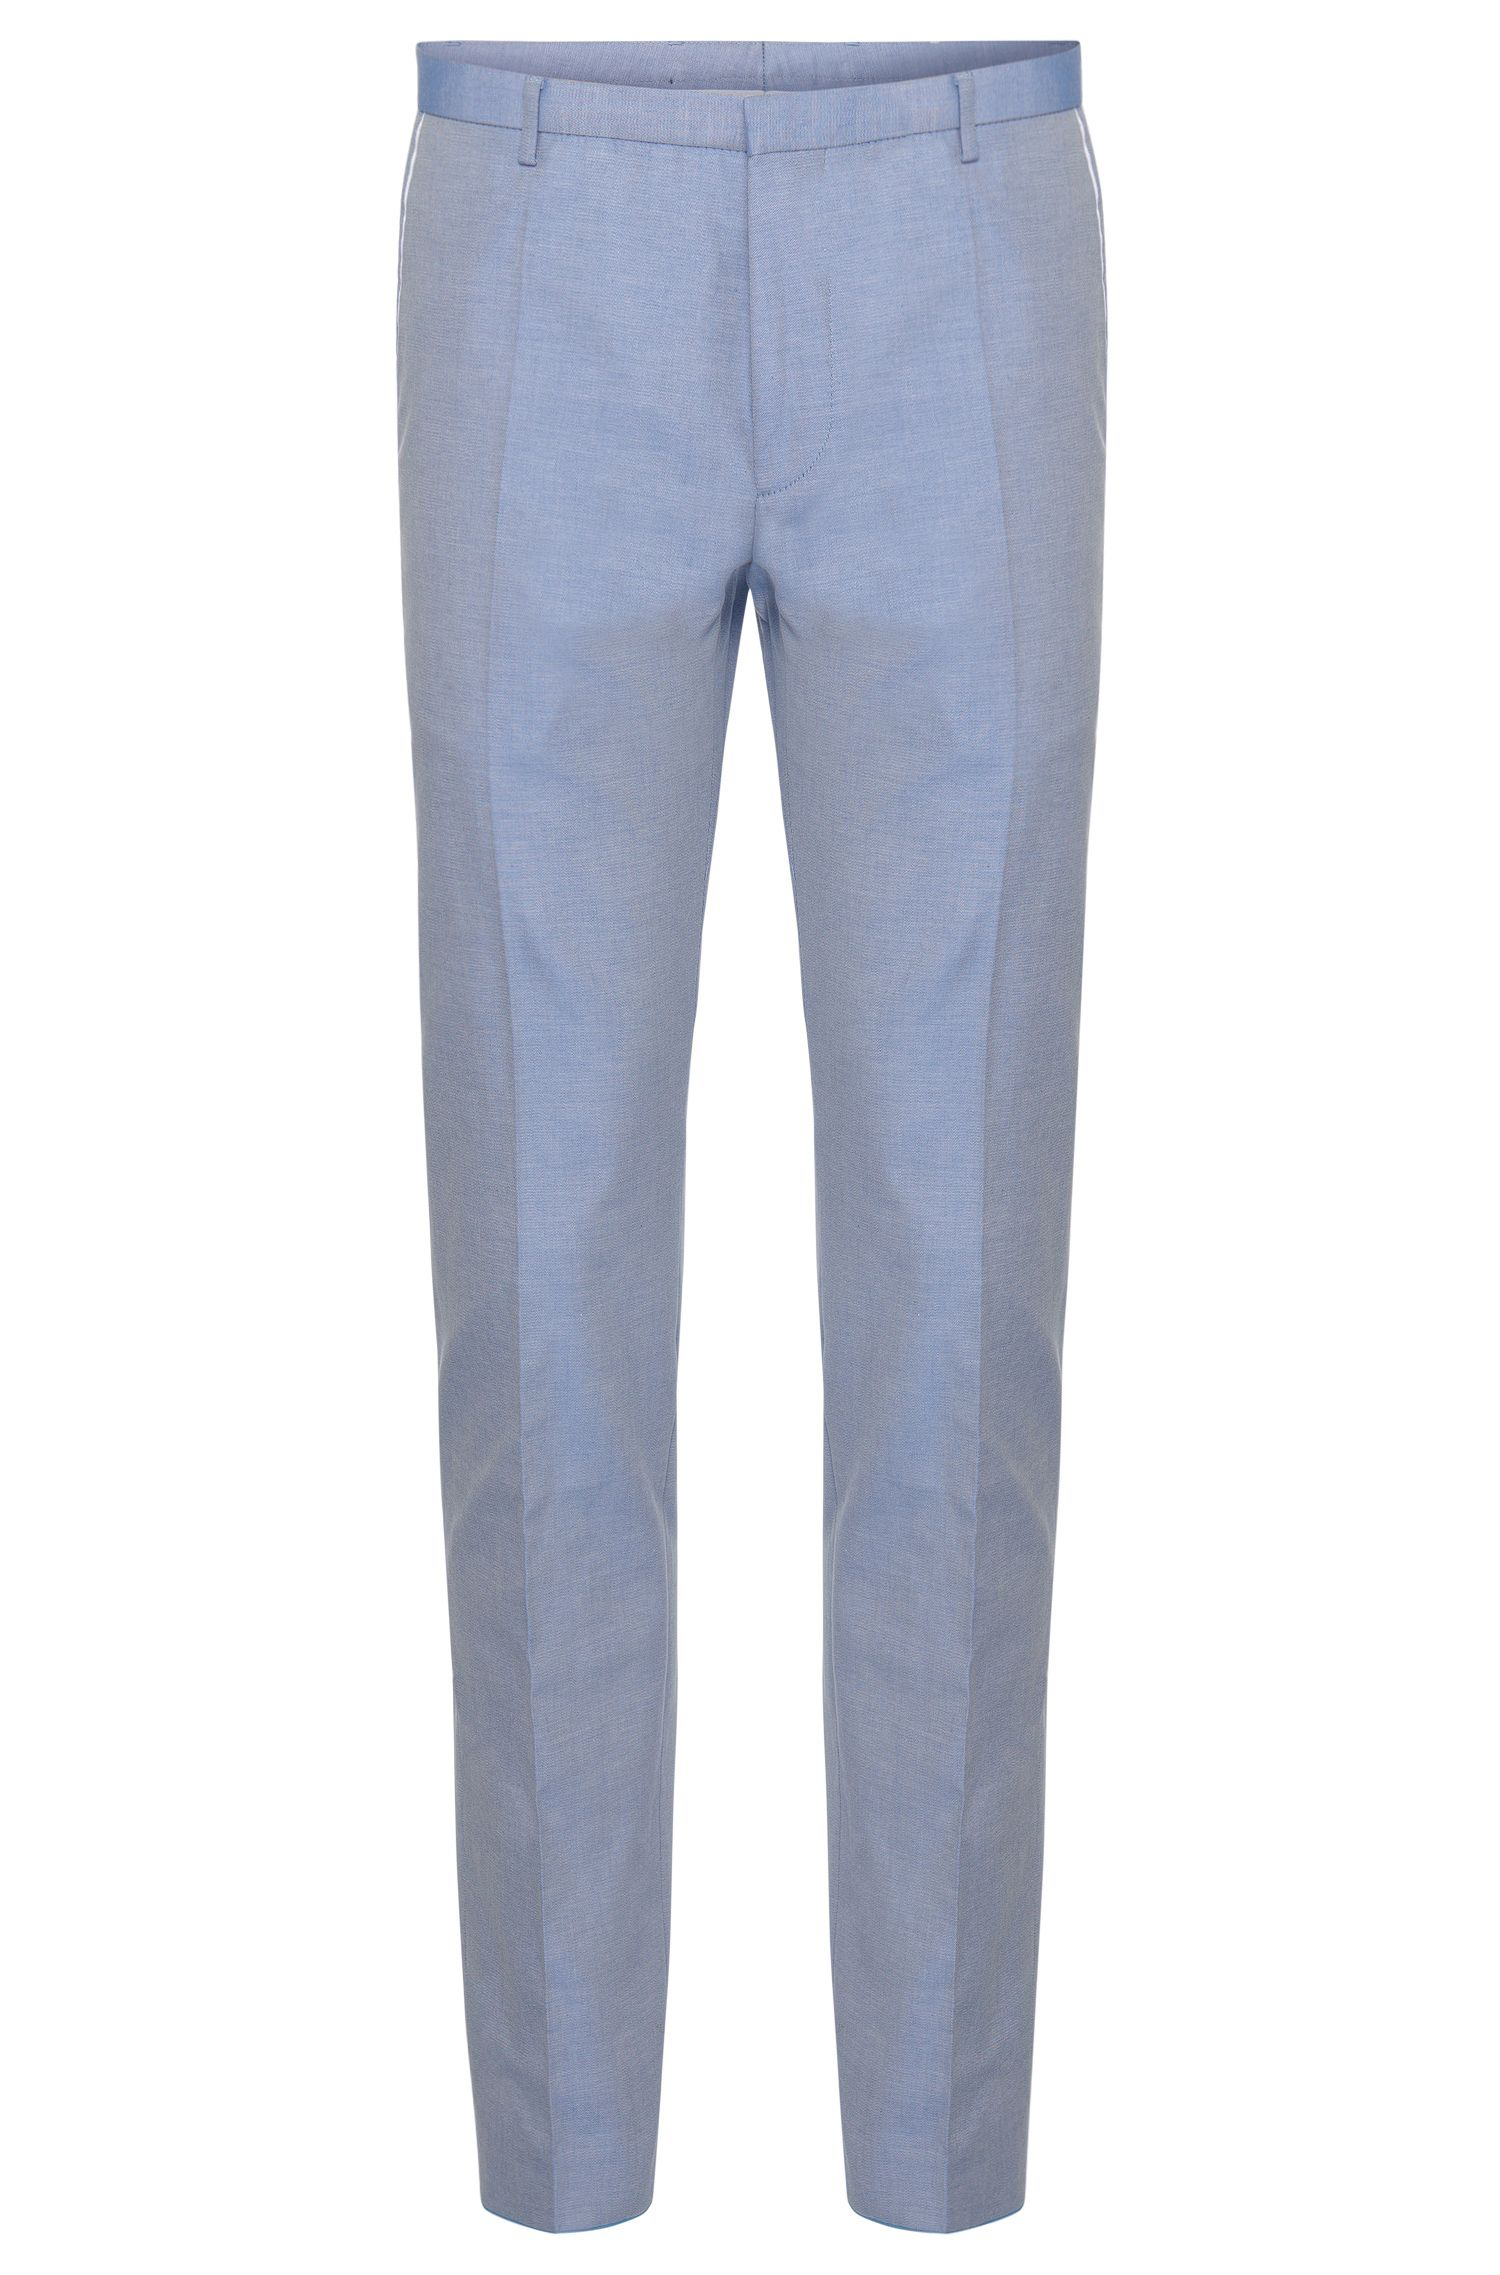 'Weldon' | Extra Slim Fit, Cotton Piped Dress Pants